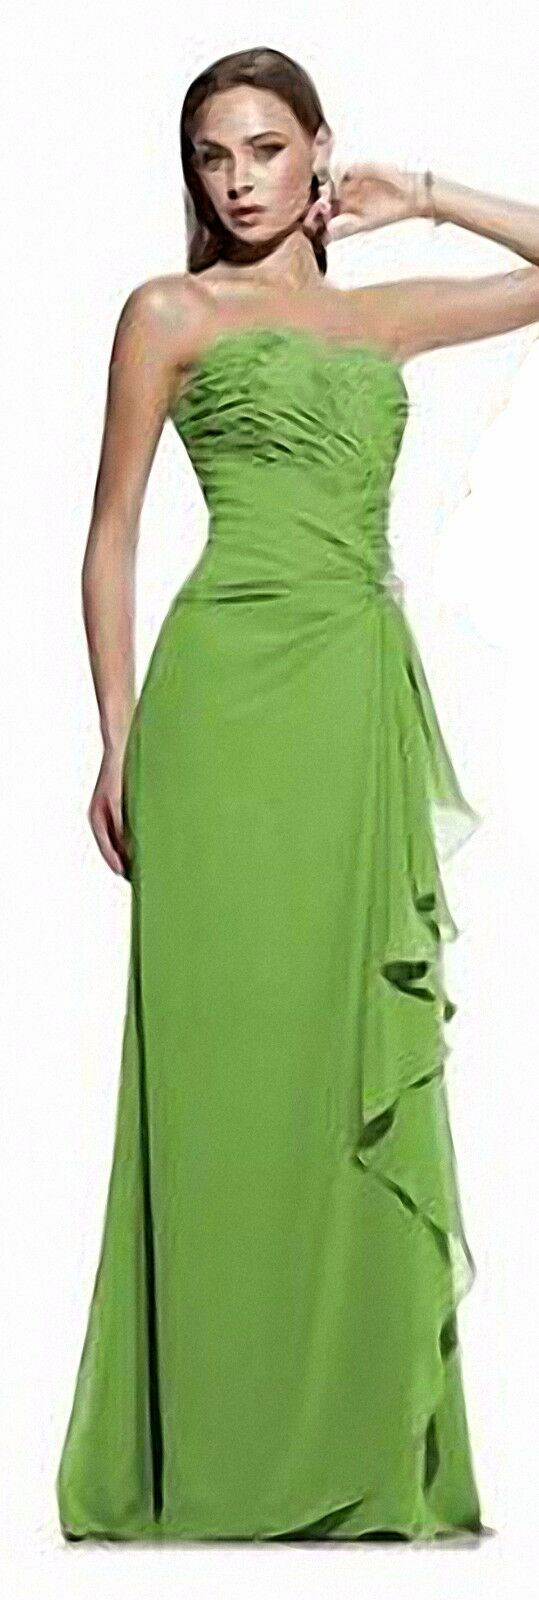 Woman's Long Formal Evening Gown (Bridesmaid, prom, etc.)